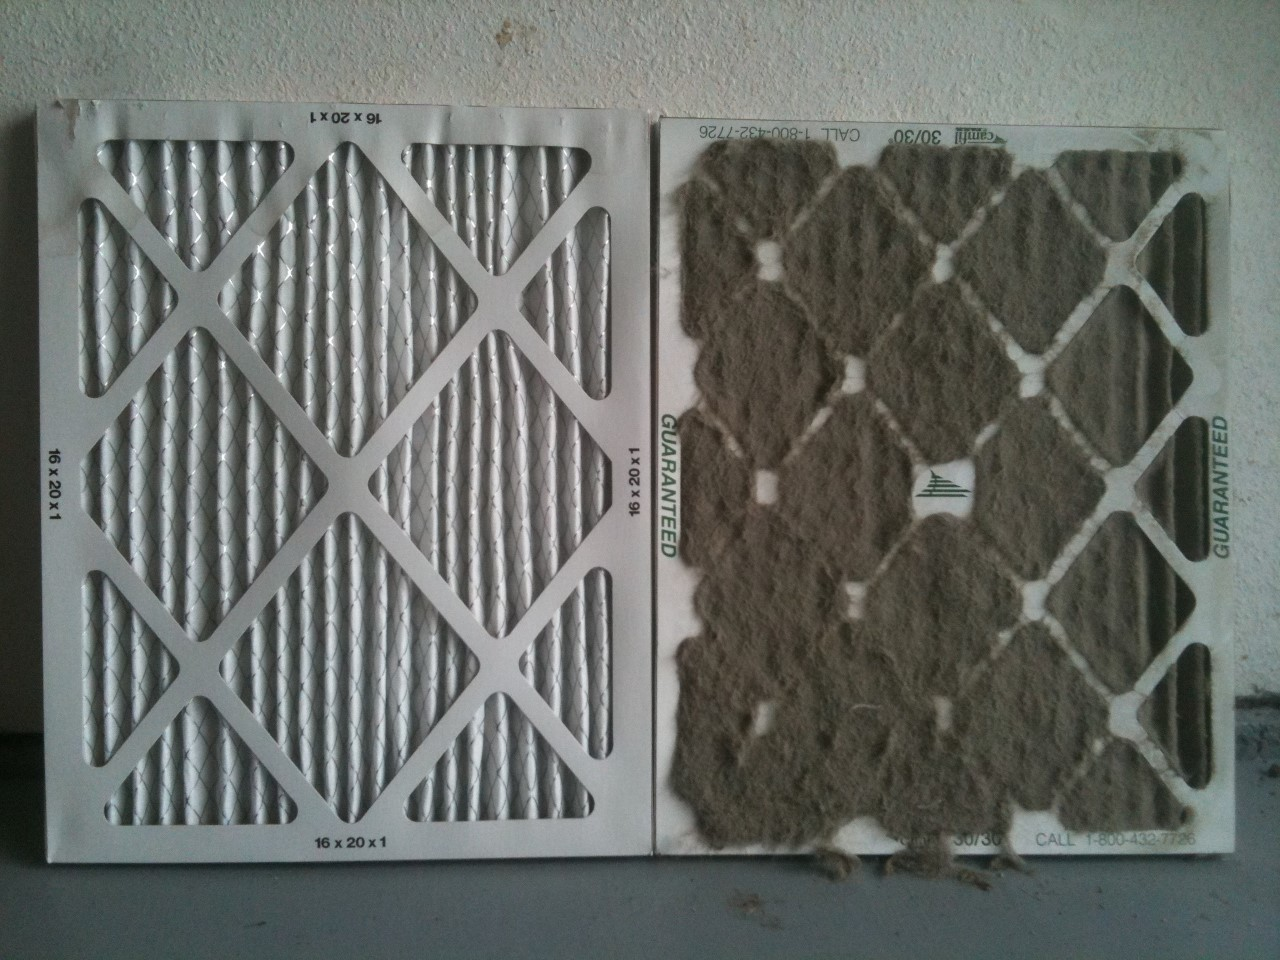 How often should I change my filters? - PAC Plumbing, Heating, Air  Conditioning